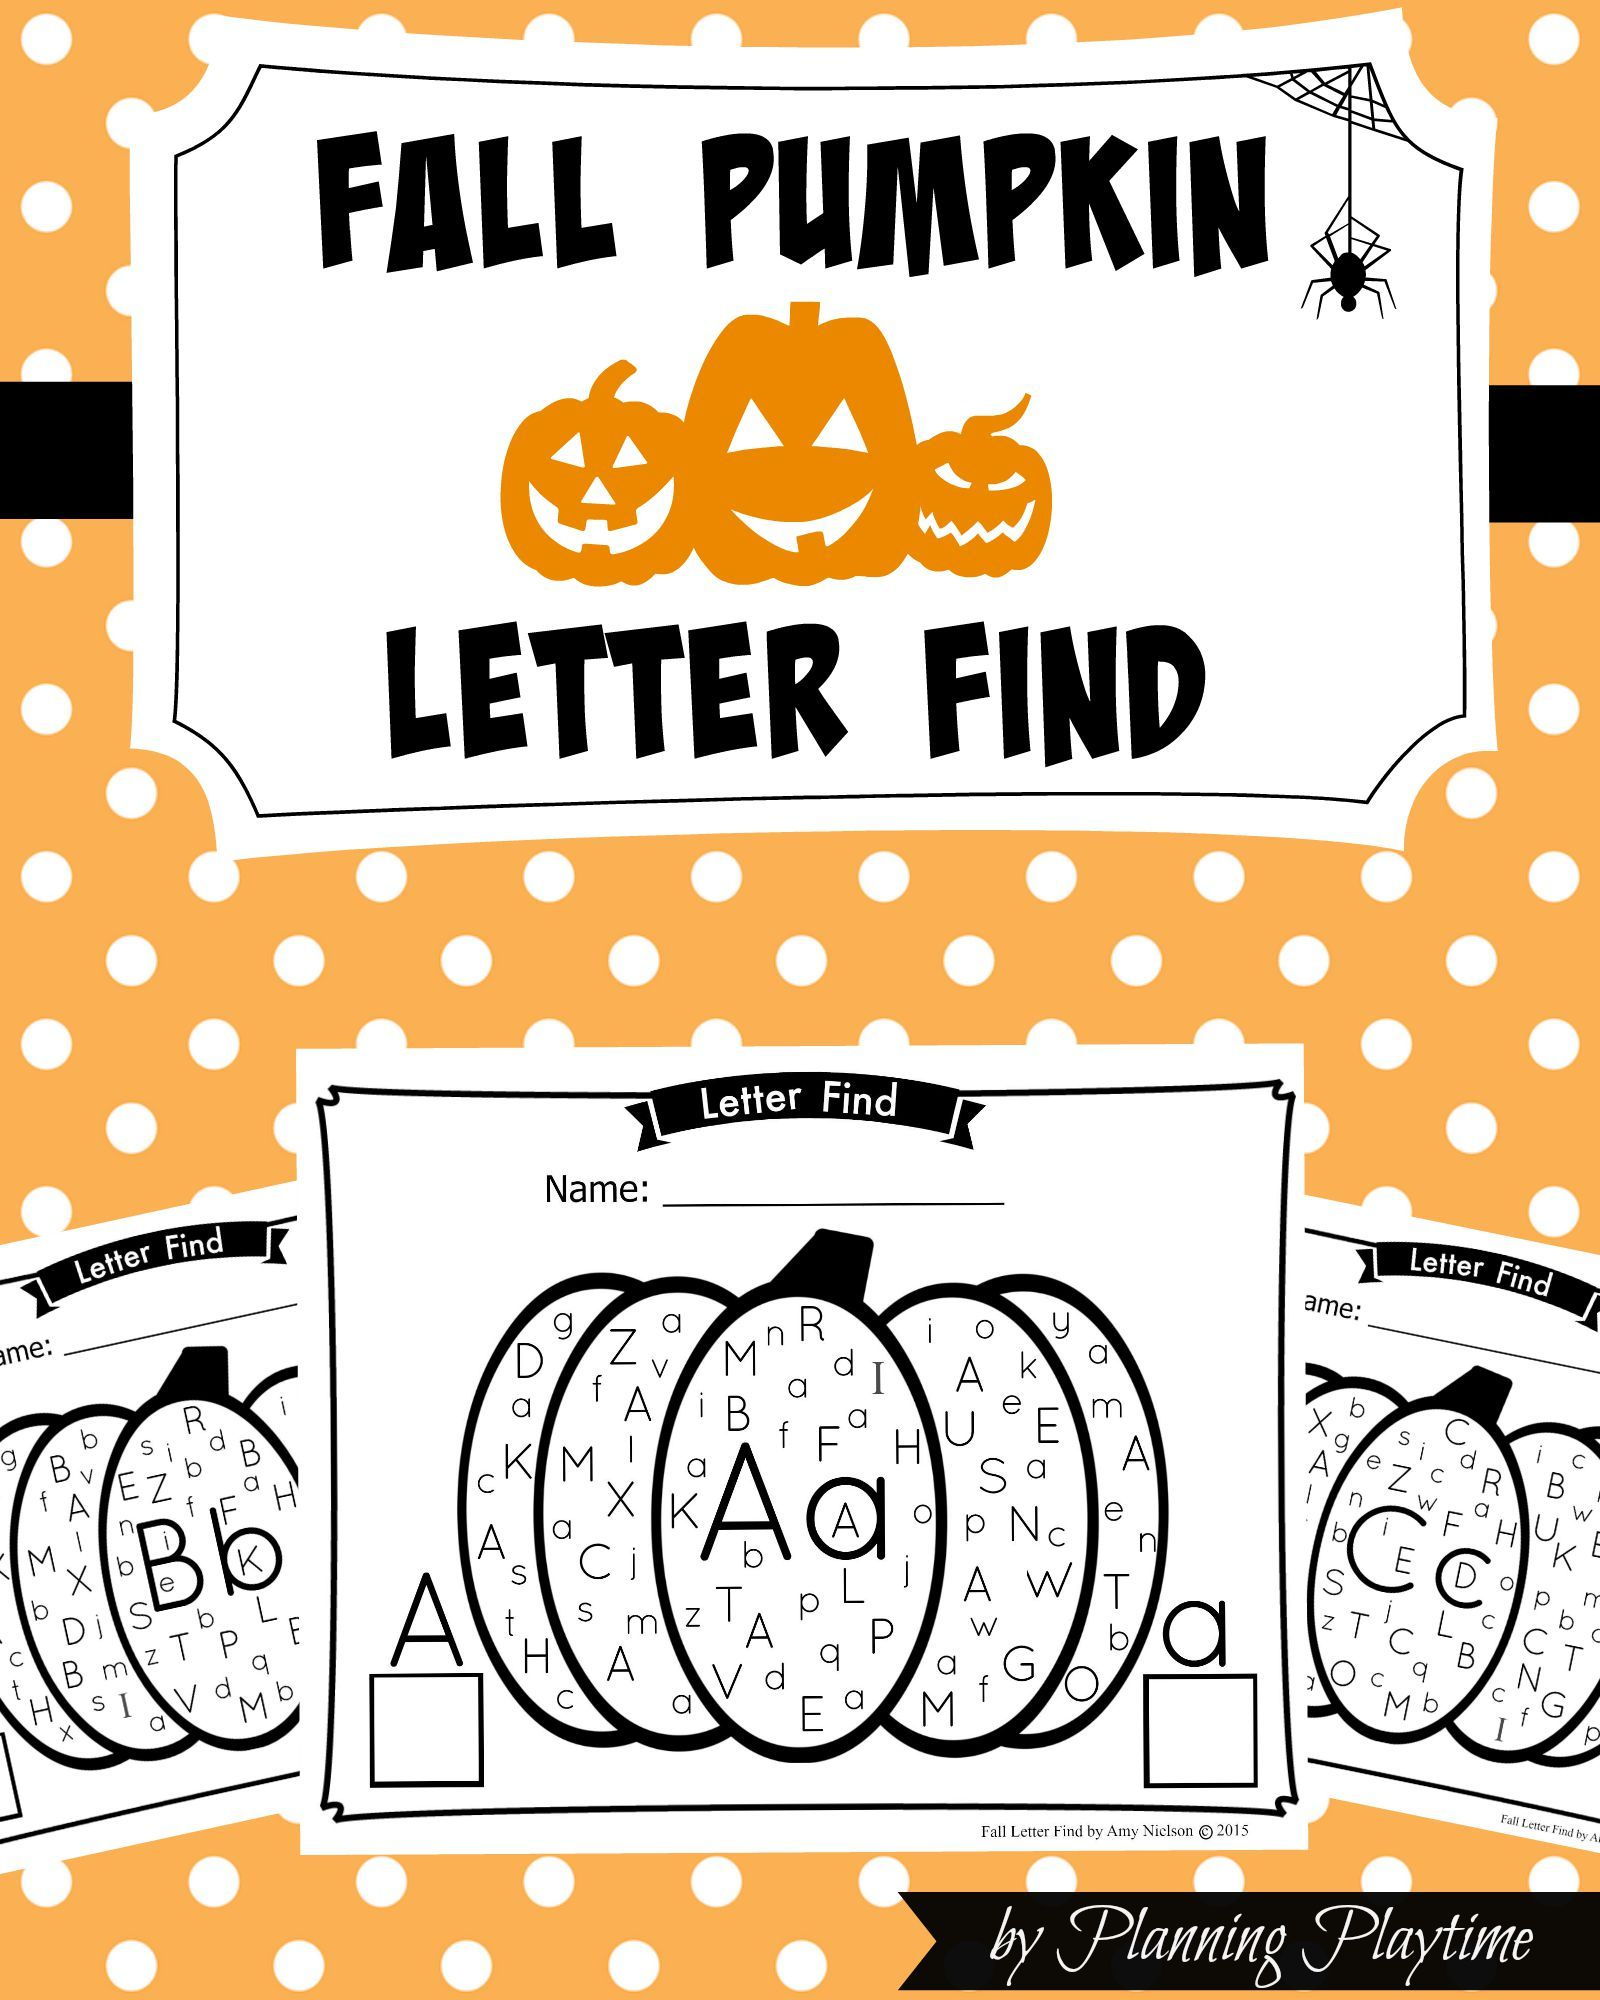 Fall Pumpkin Alphabet Letter Find